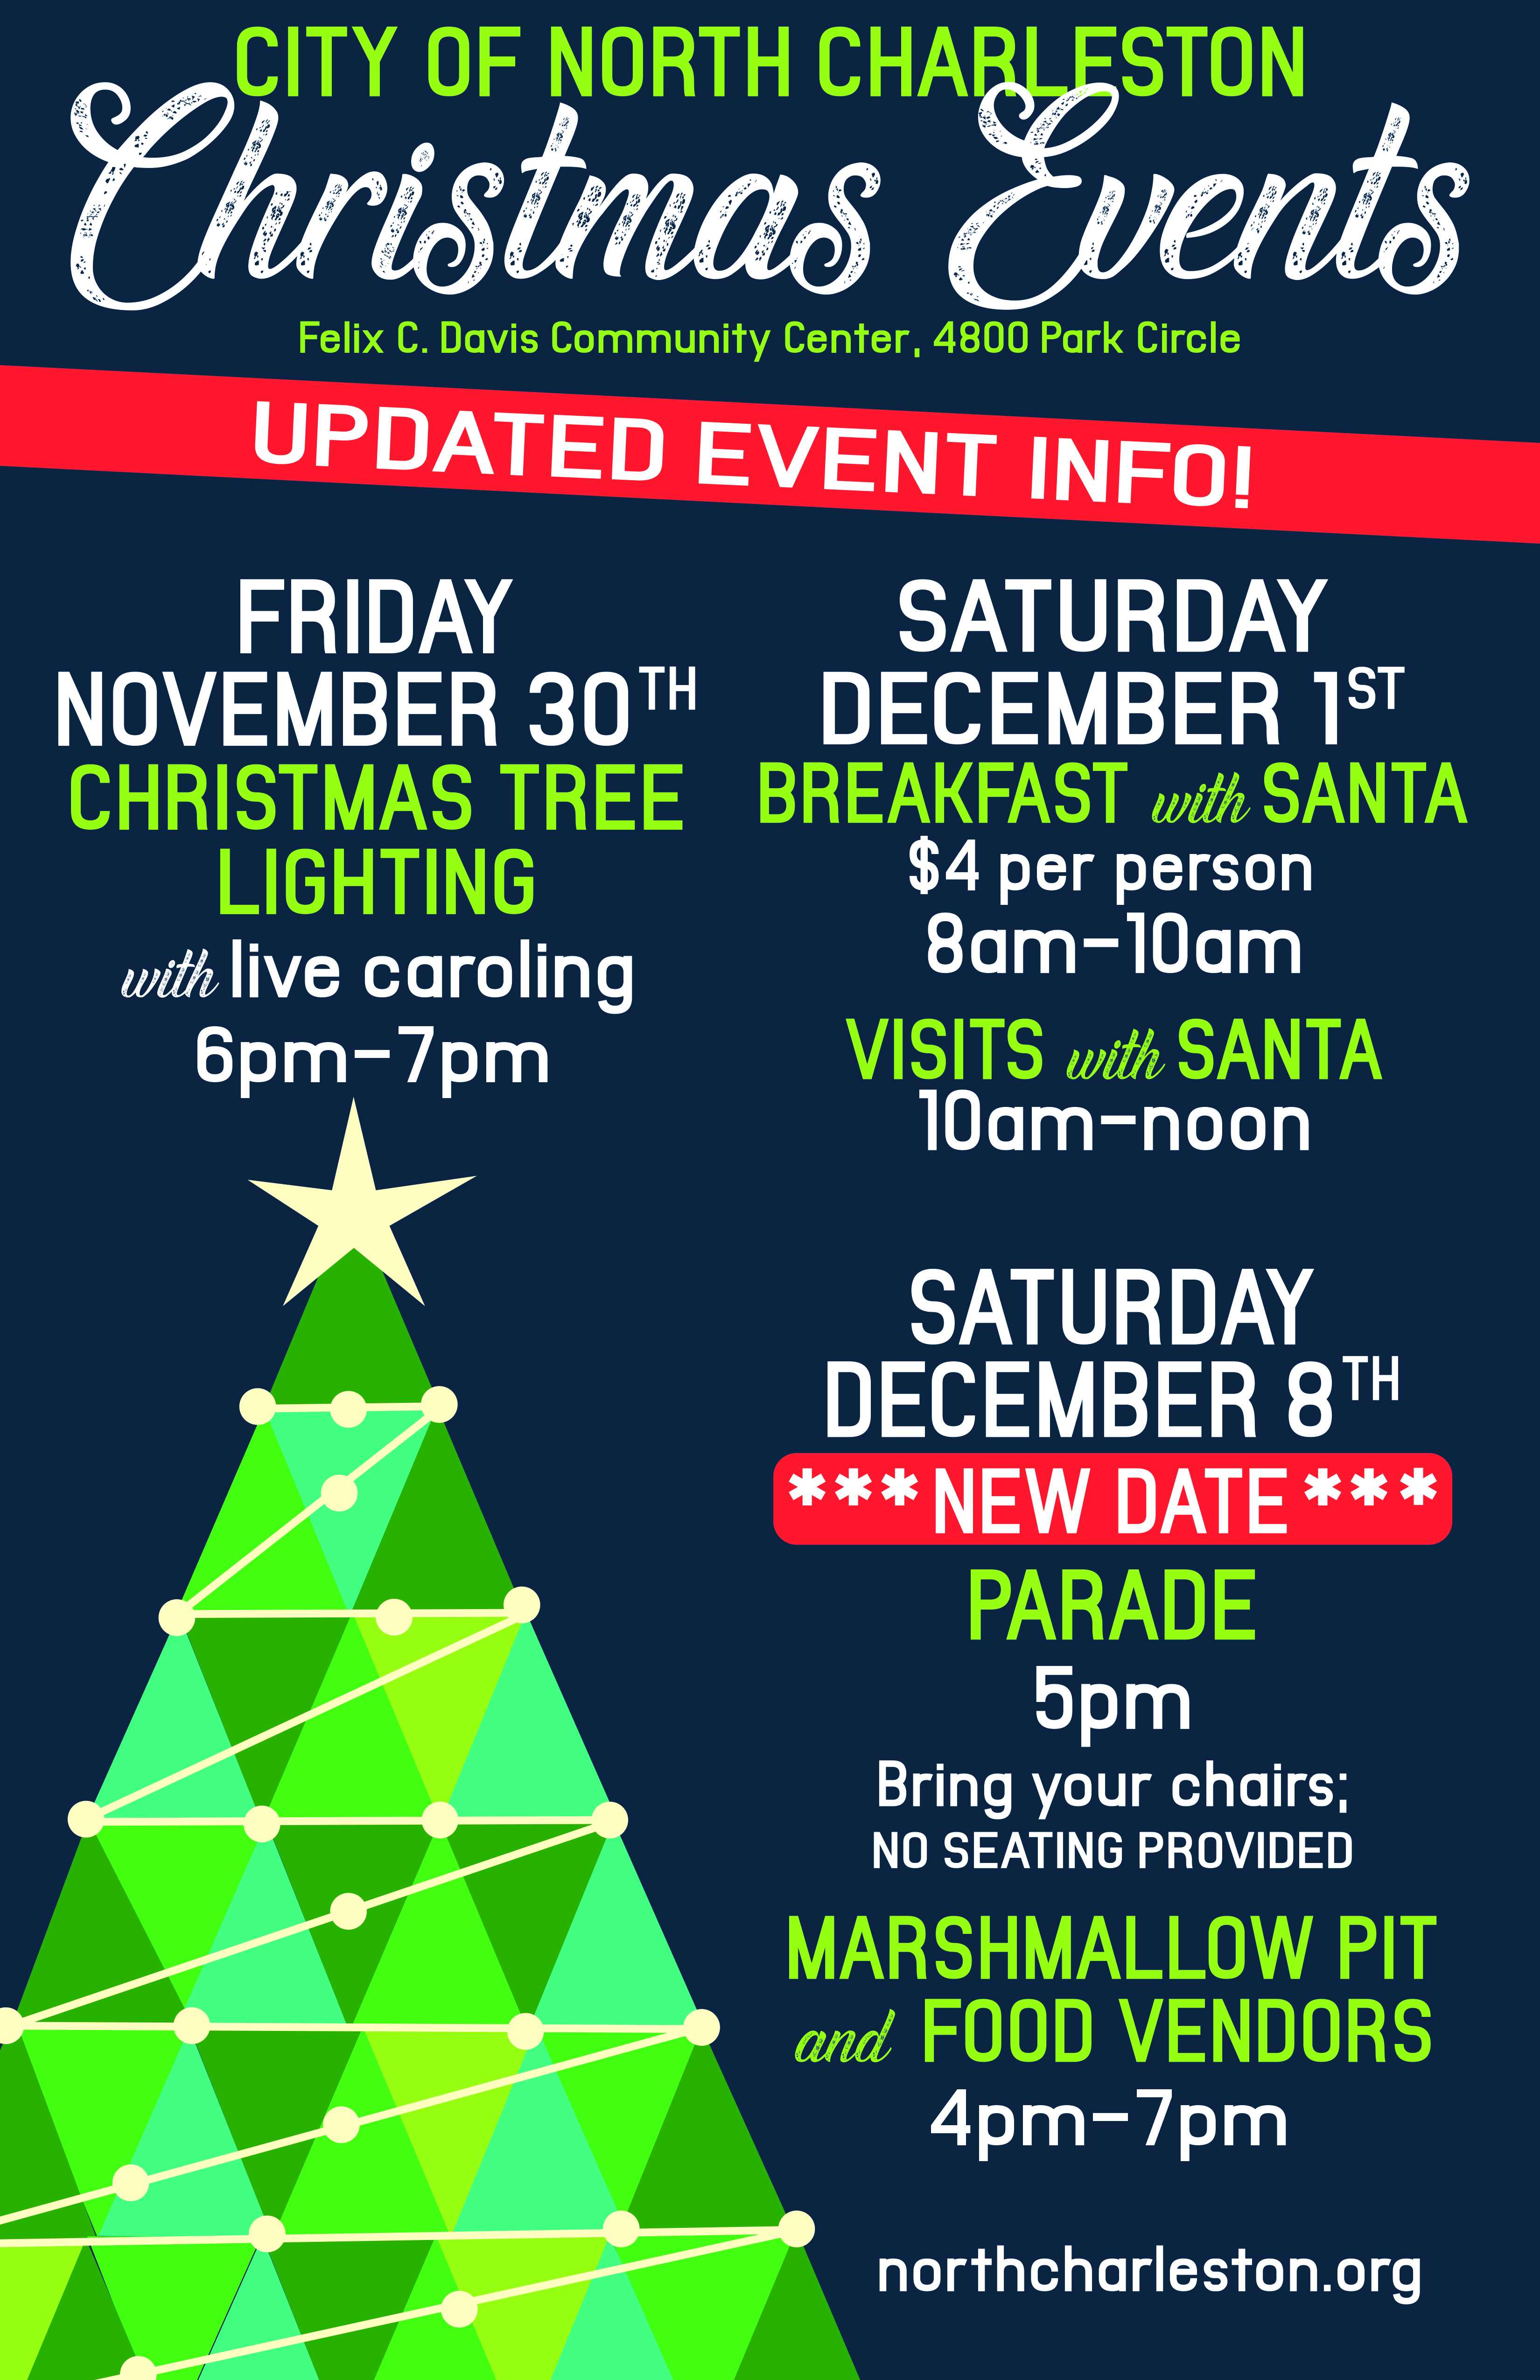 North Charleston Christmas Parade 2019 Christmas Festival & Parade – City of North Charleston, SC